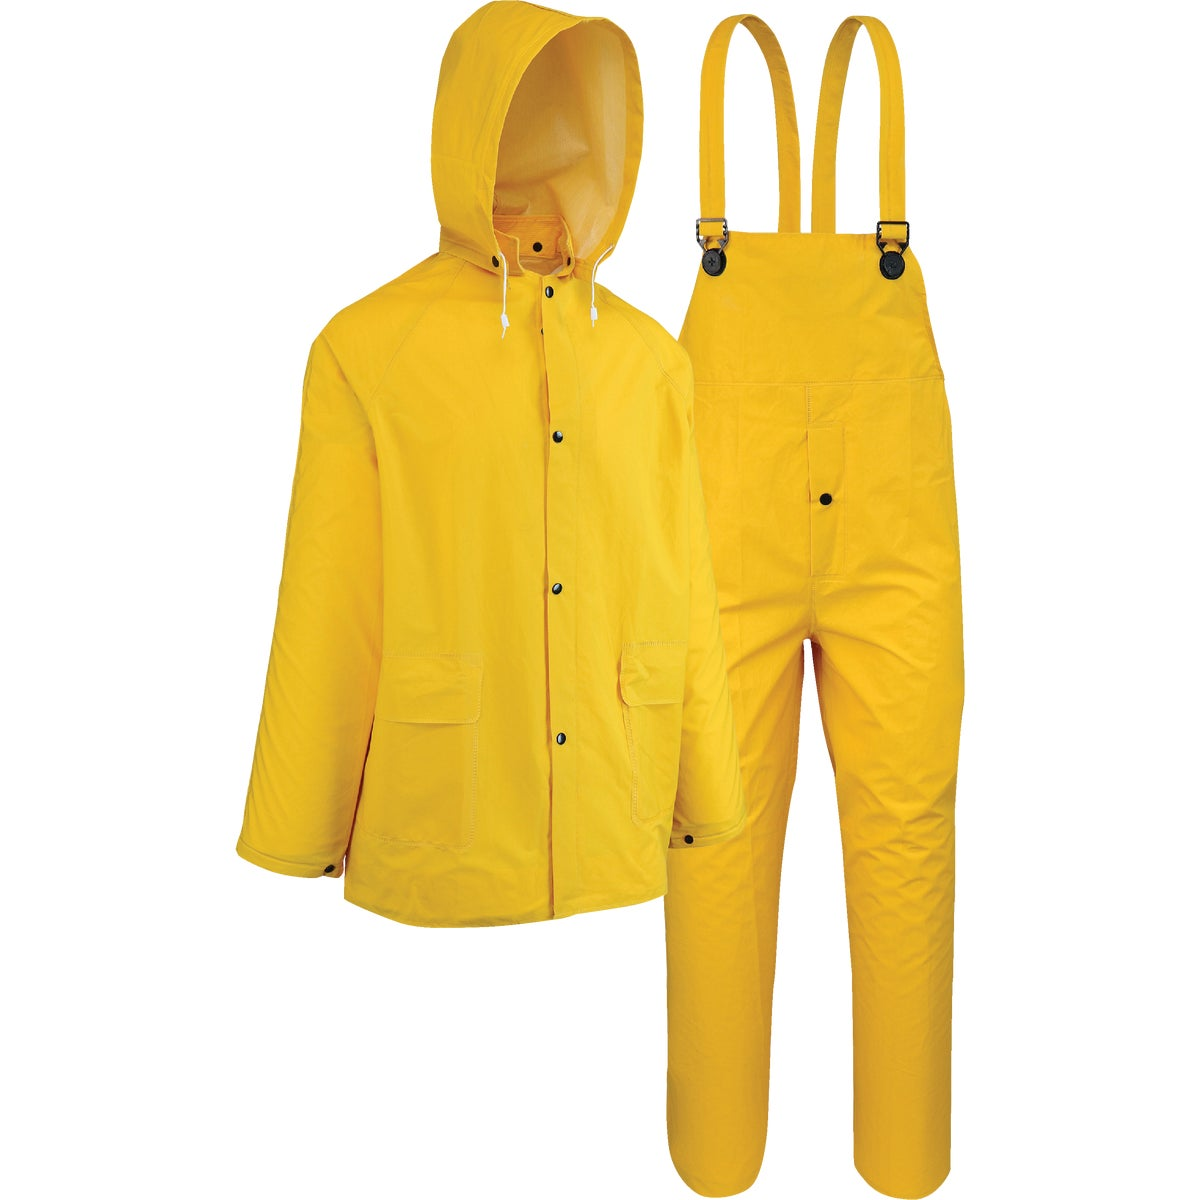 XXXL .35 YELLOW RAINSUIT - R1013X by Custom Leathercraft